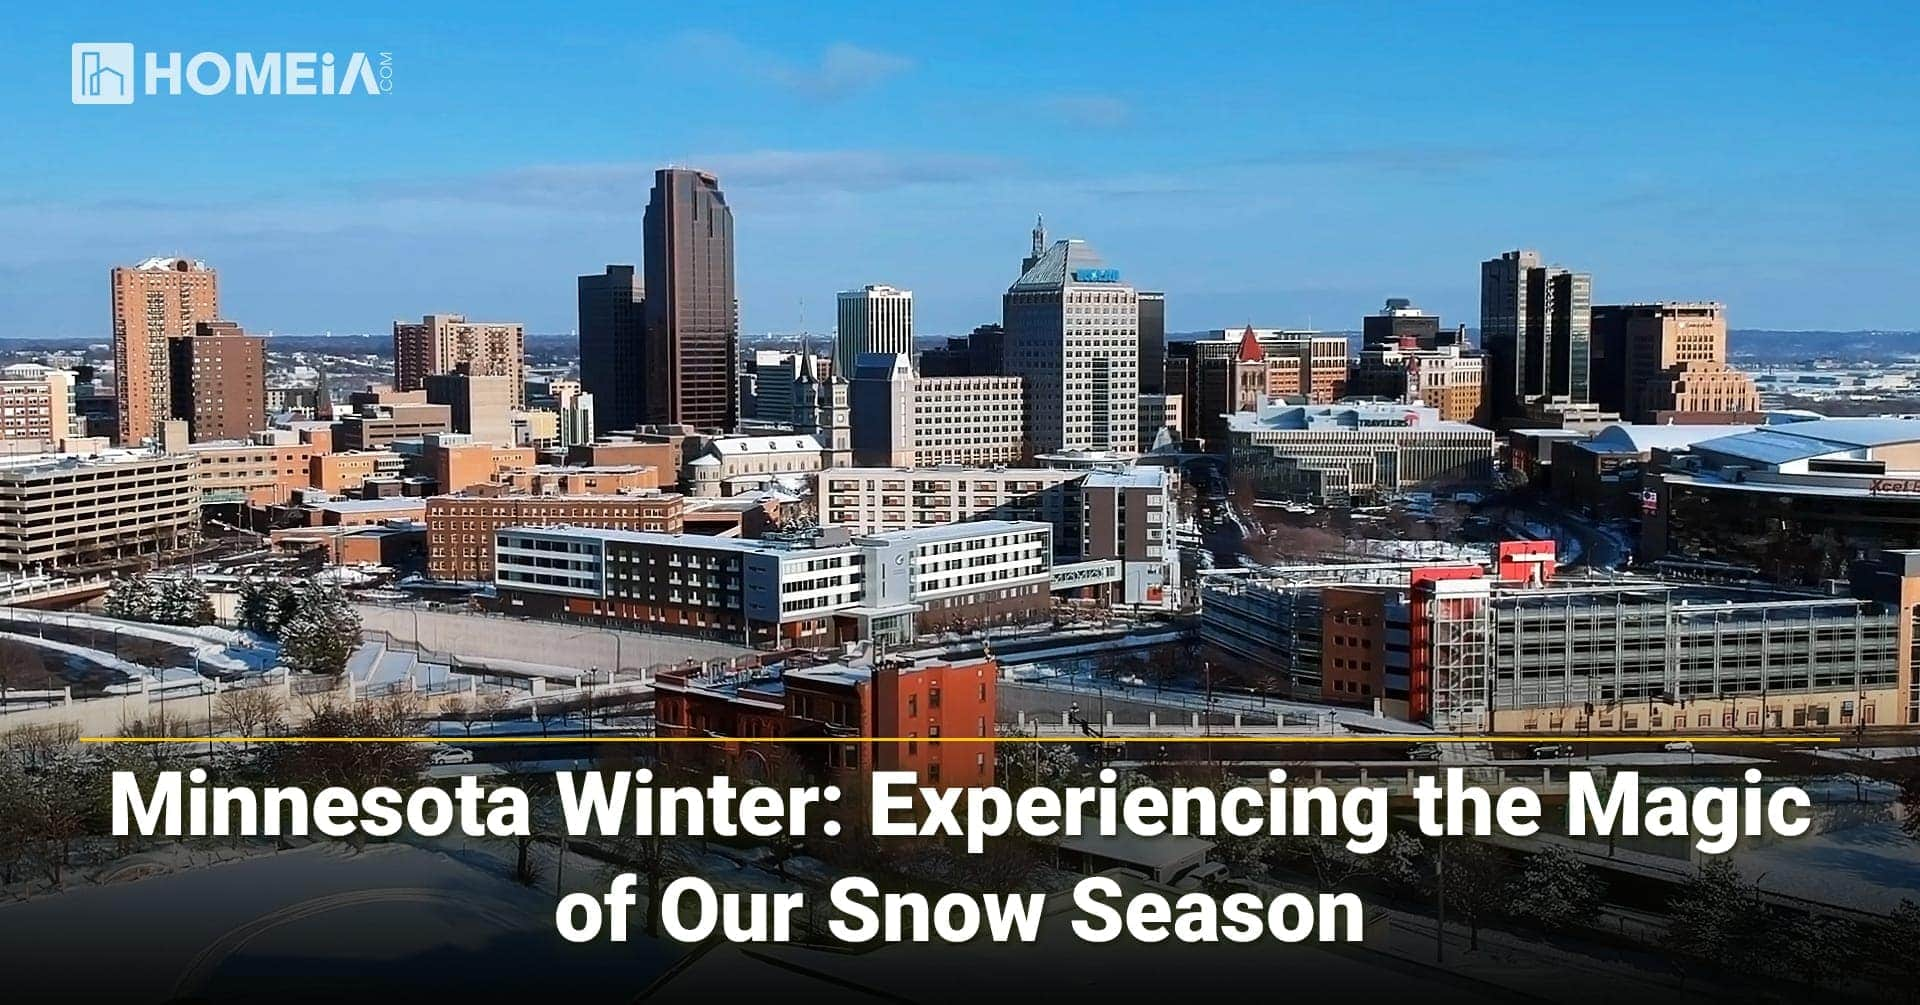 Minnesota Winter: Experiencing the Magic of Our Snow Season